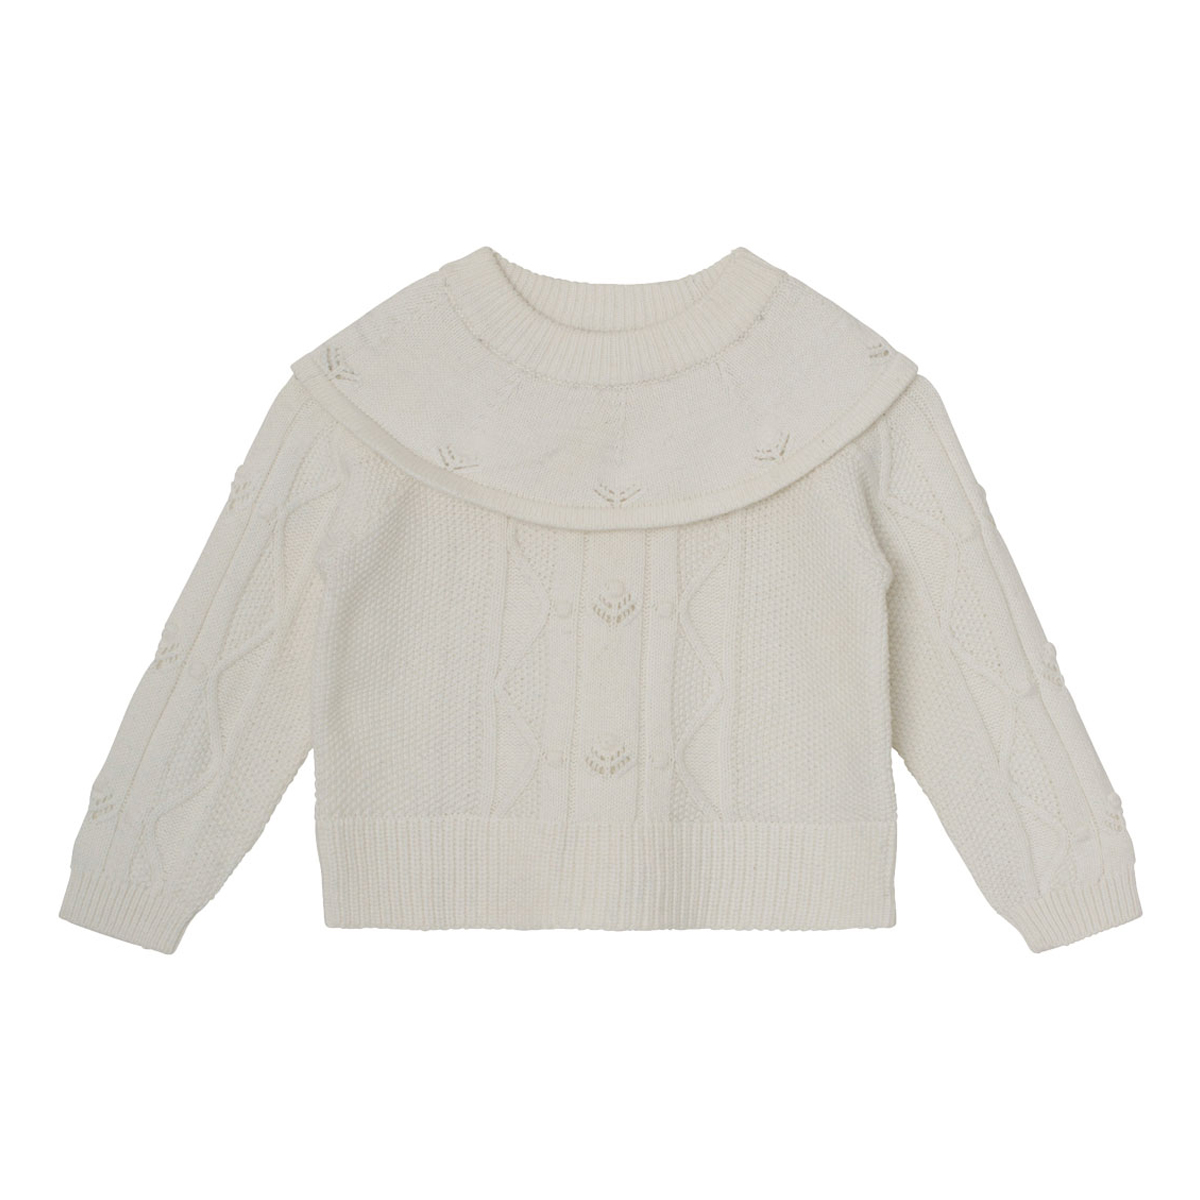 MiniATure Trisha sweater in white